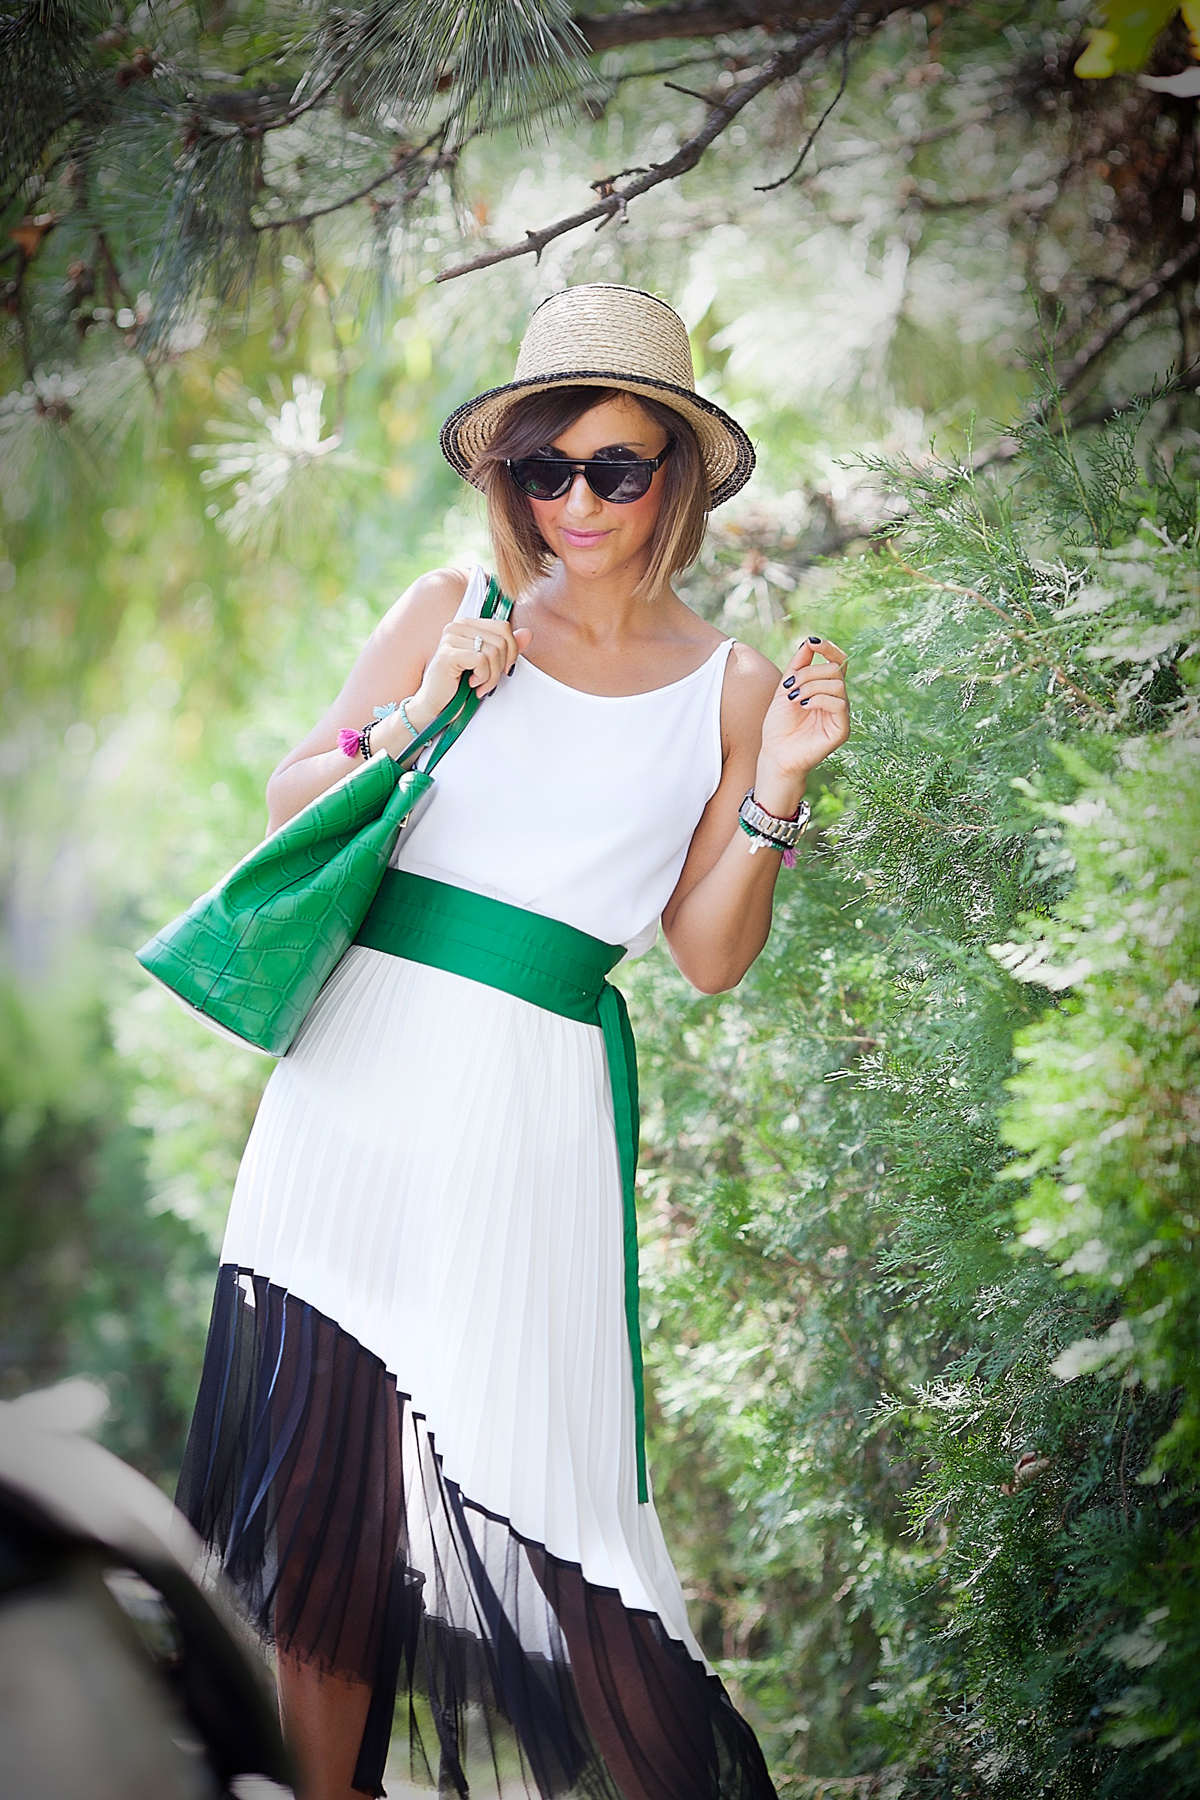 pleated-skirt-for-perfect-summer-outfit-by-fashion-blogger-ellena-galant